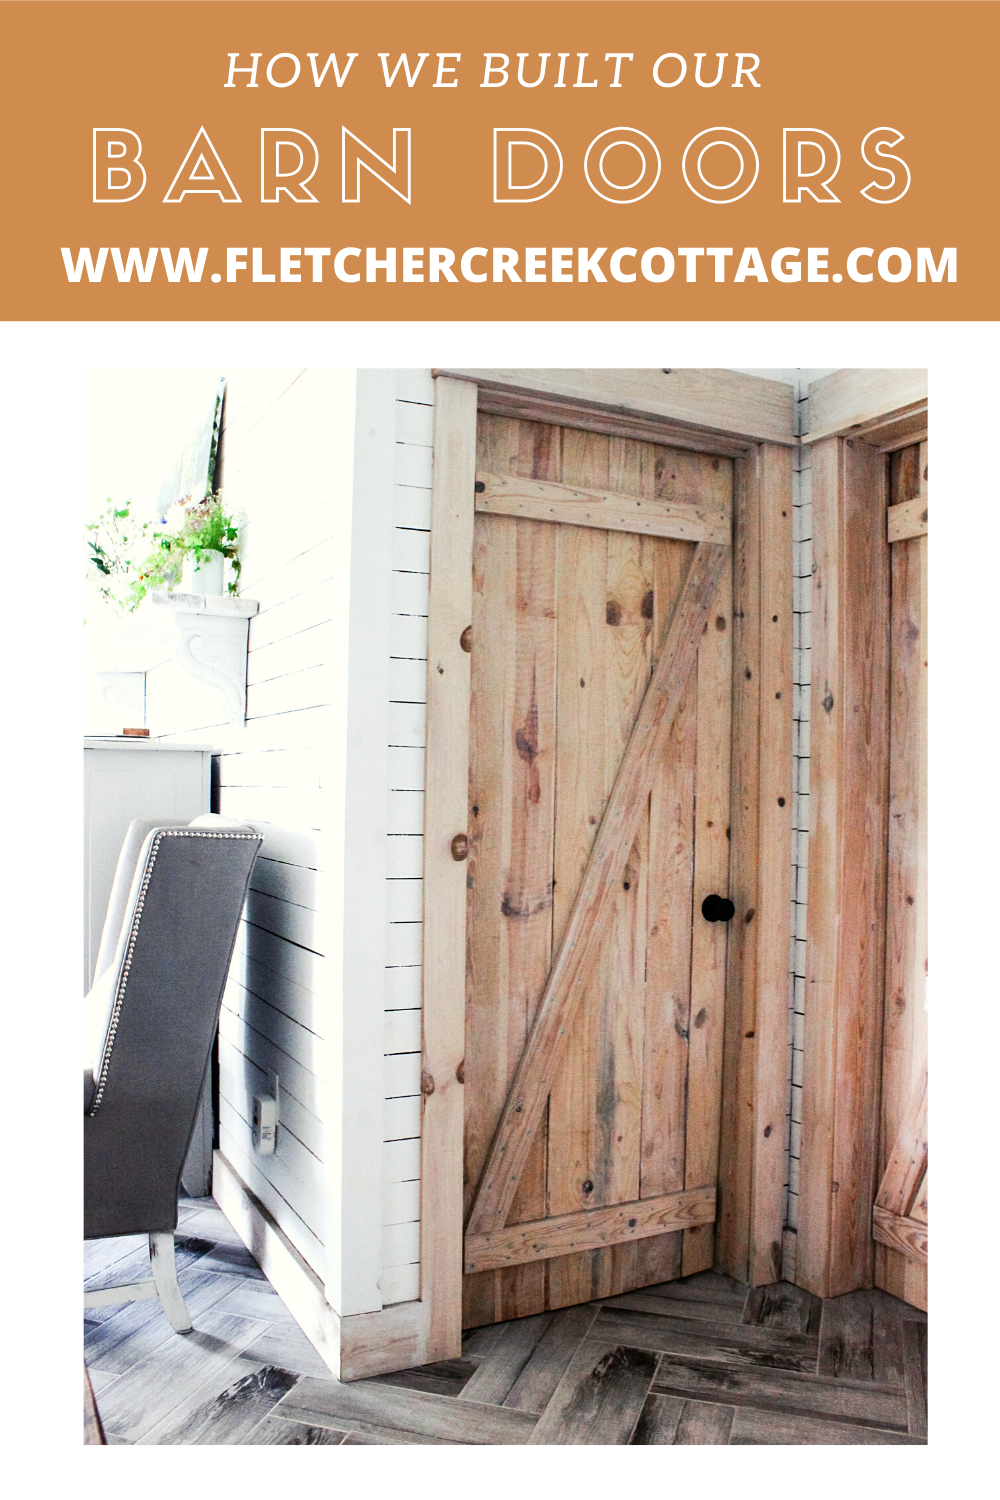 GO TO WWW.FLETCHERCREEKCOTTAGE for a DIY